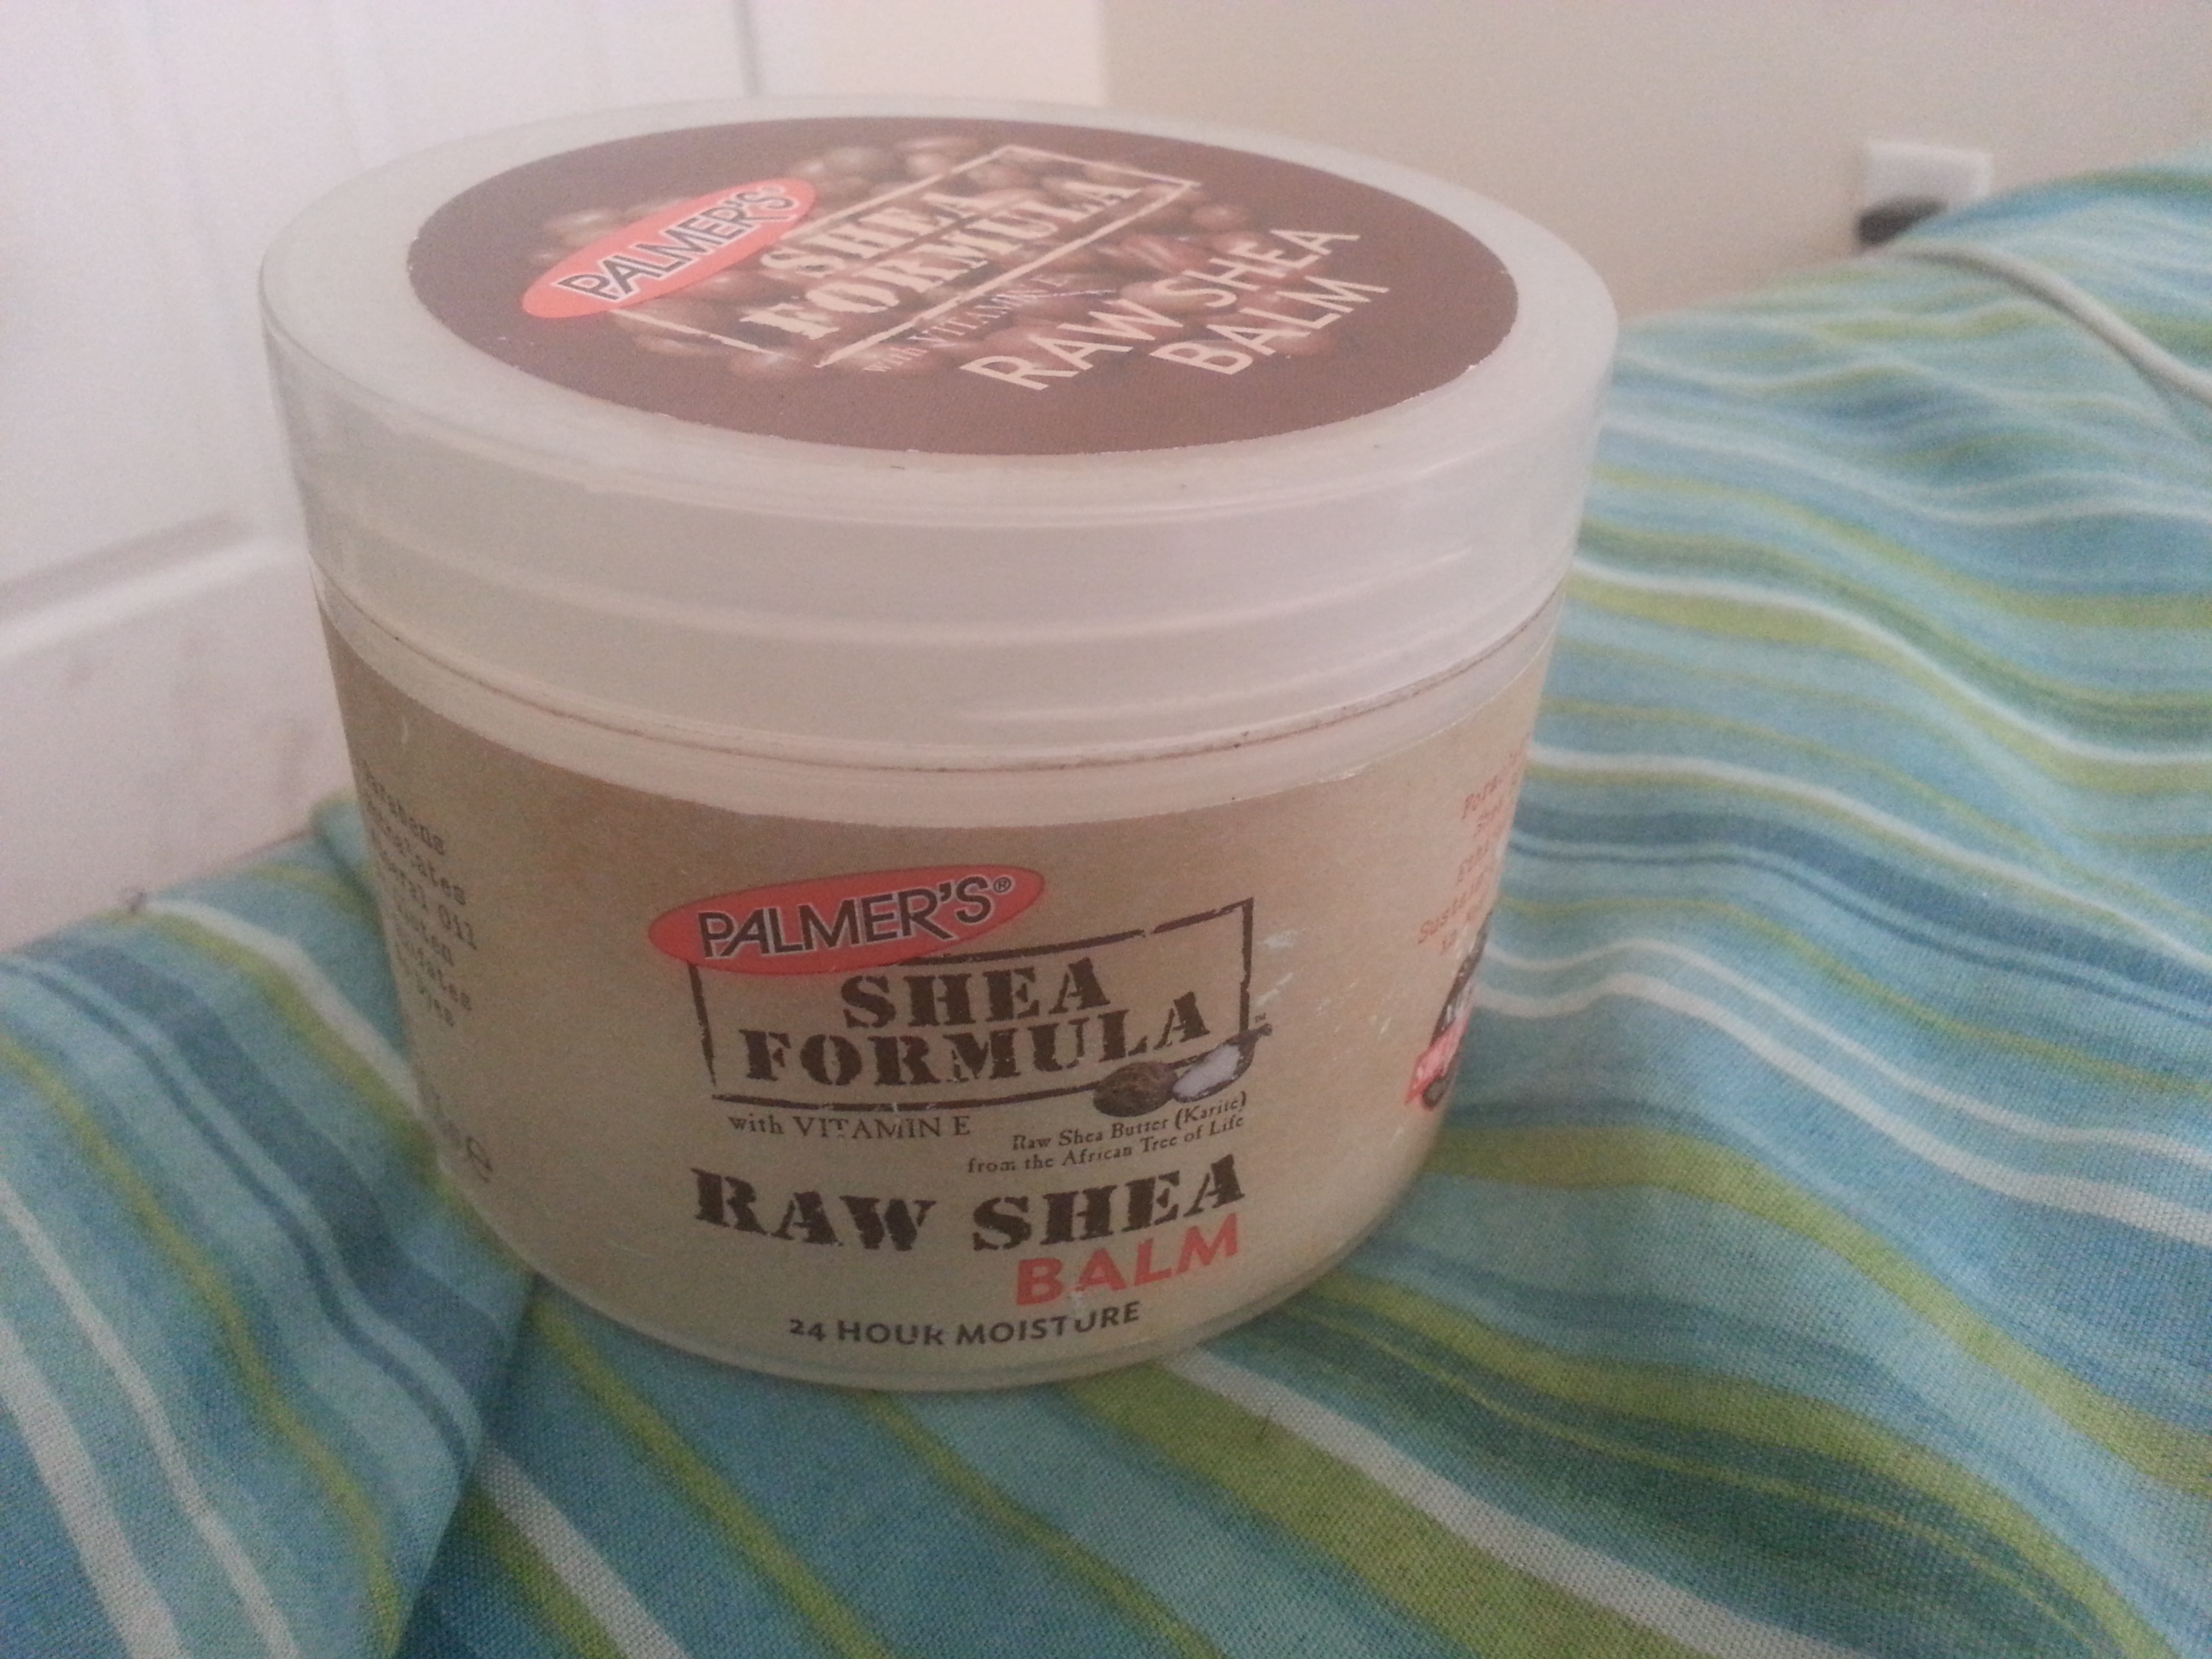 Product Review: RAW SHEA BALM